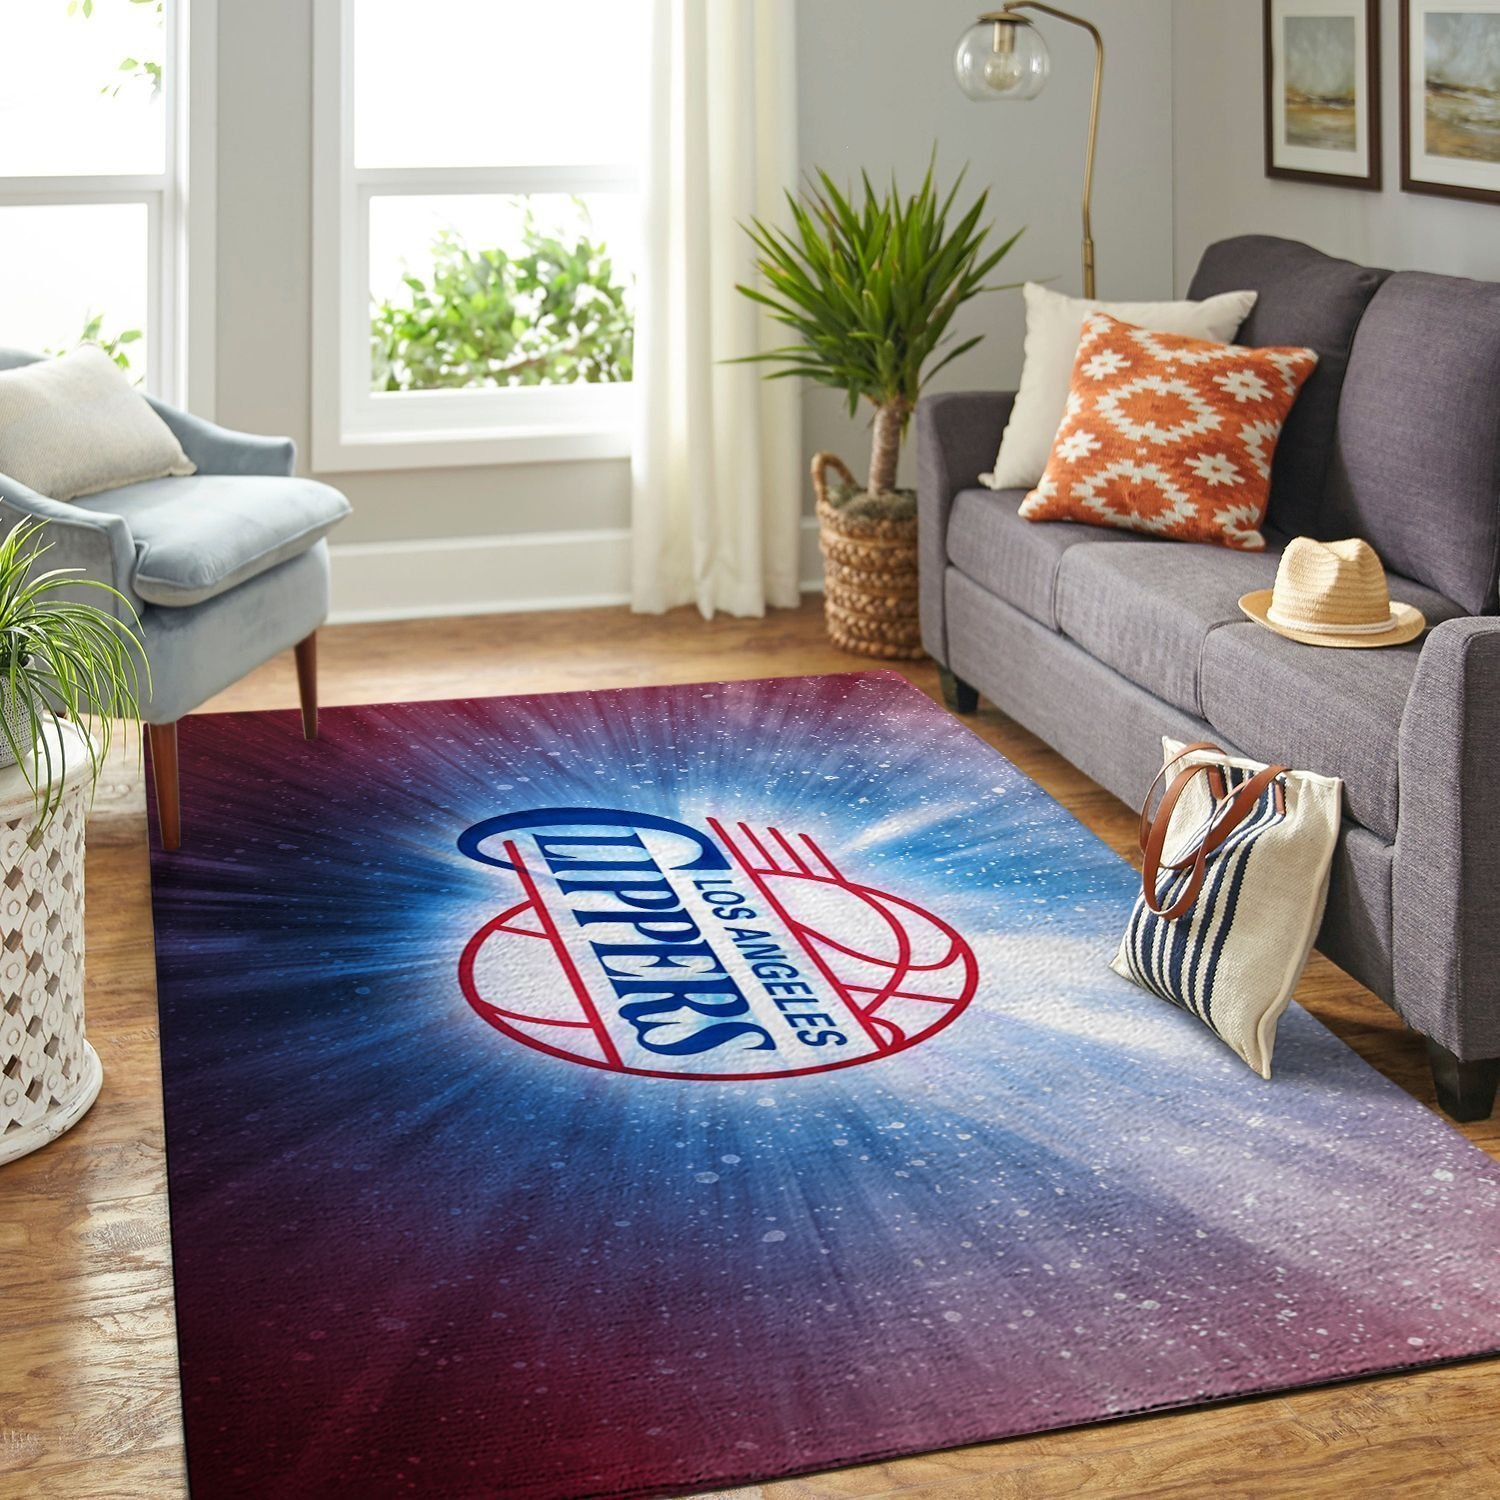 Amazon Los Angeles Clippers Living Room Area No3552 Rug